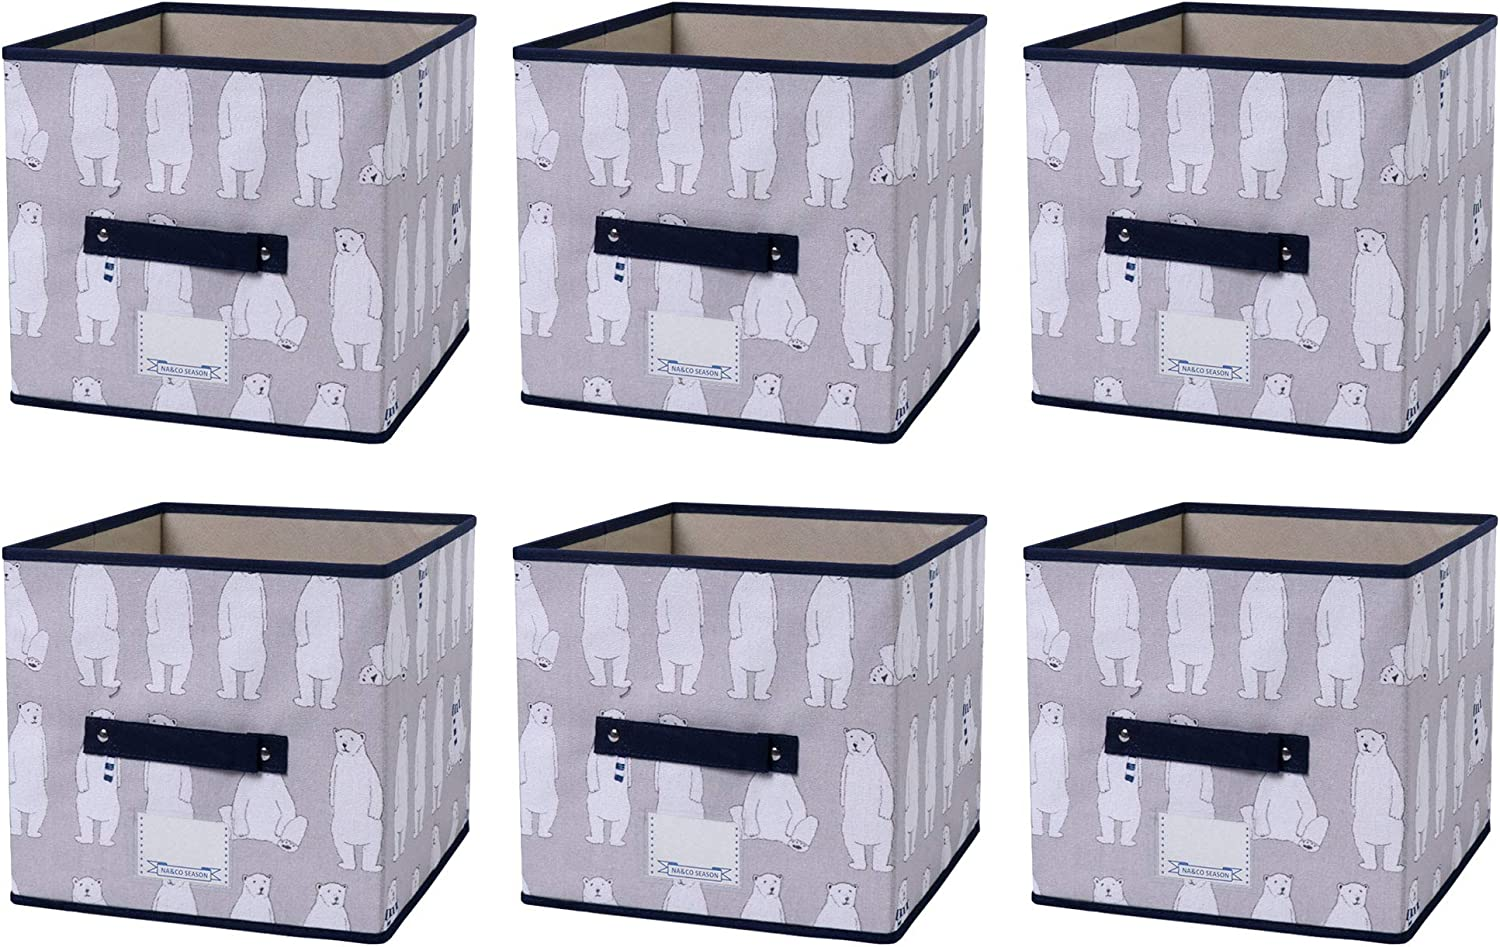 Grey Bear NA/&CO SEASON 6 Pack Foldable Canvas Storage Bins Containers Great Organizer Storage Boxes for Closet//Cabinet//Office//Shelf//Nursery Decorative Cube Baskets with Handles